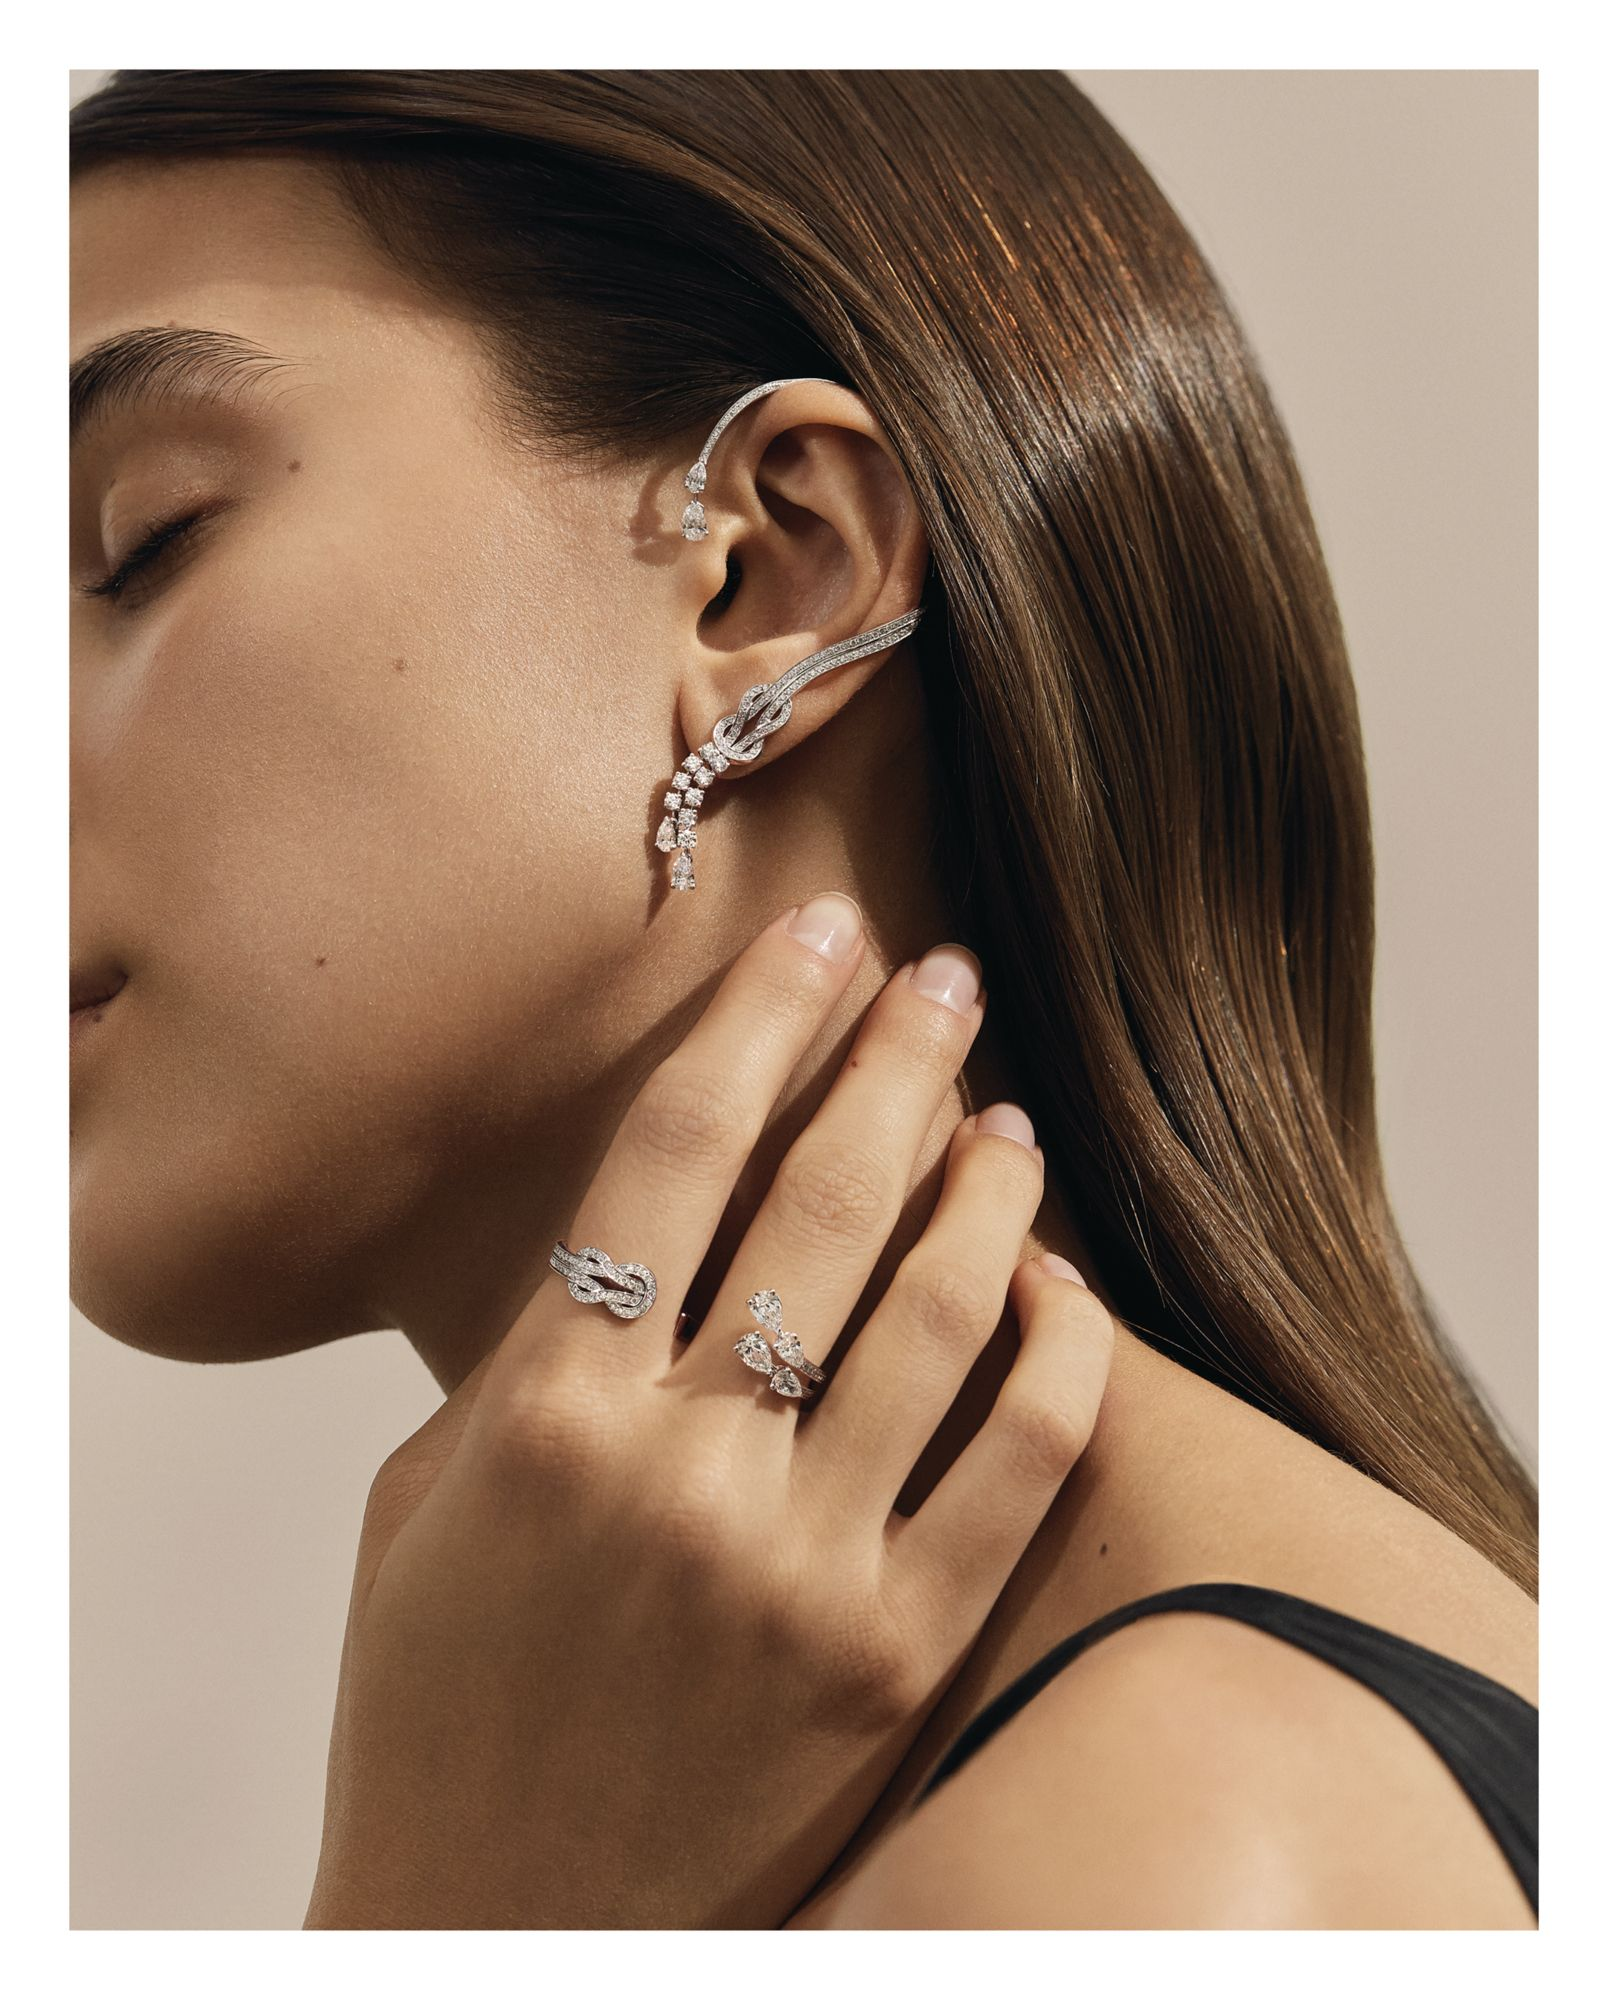 Chance Infinie ear cuff and double ring in white gold set with diamonds, both by Fred